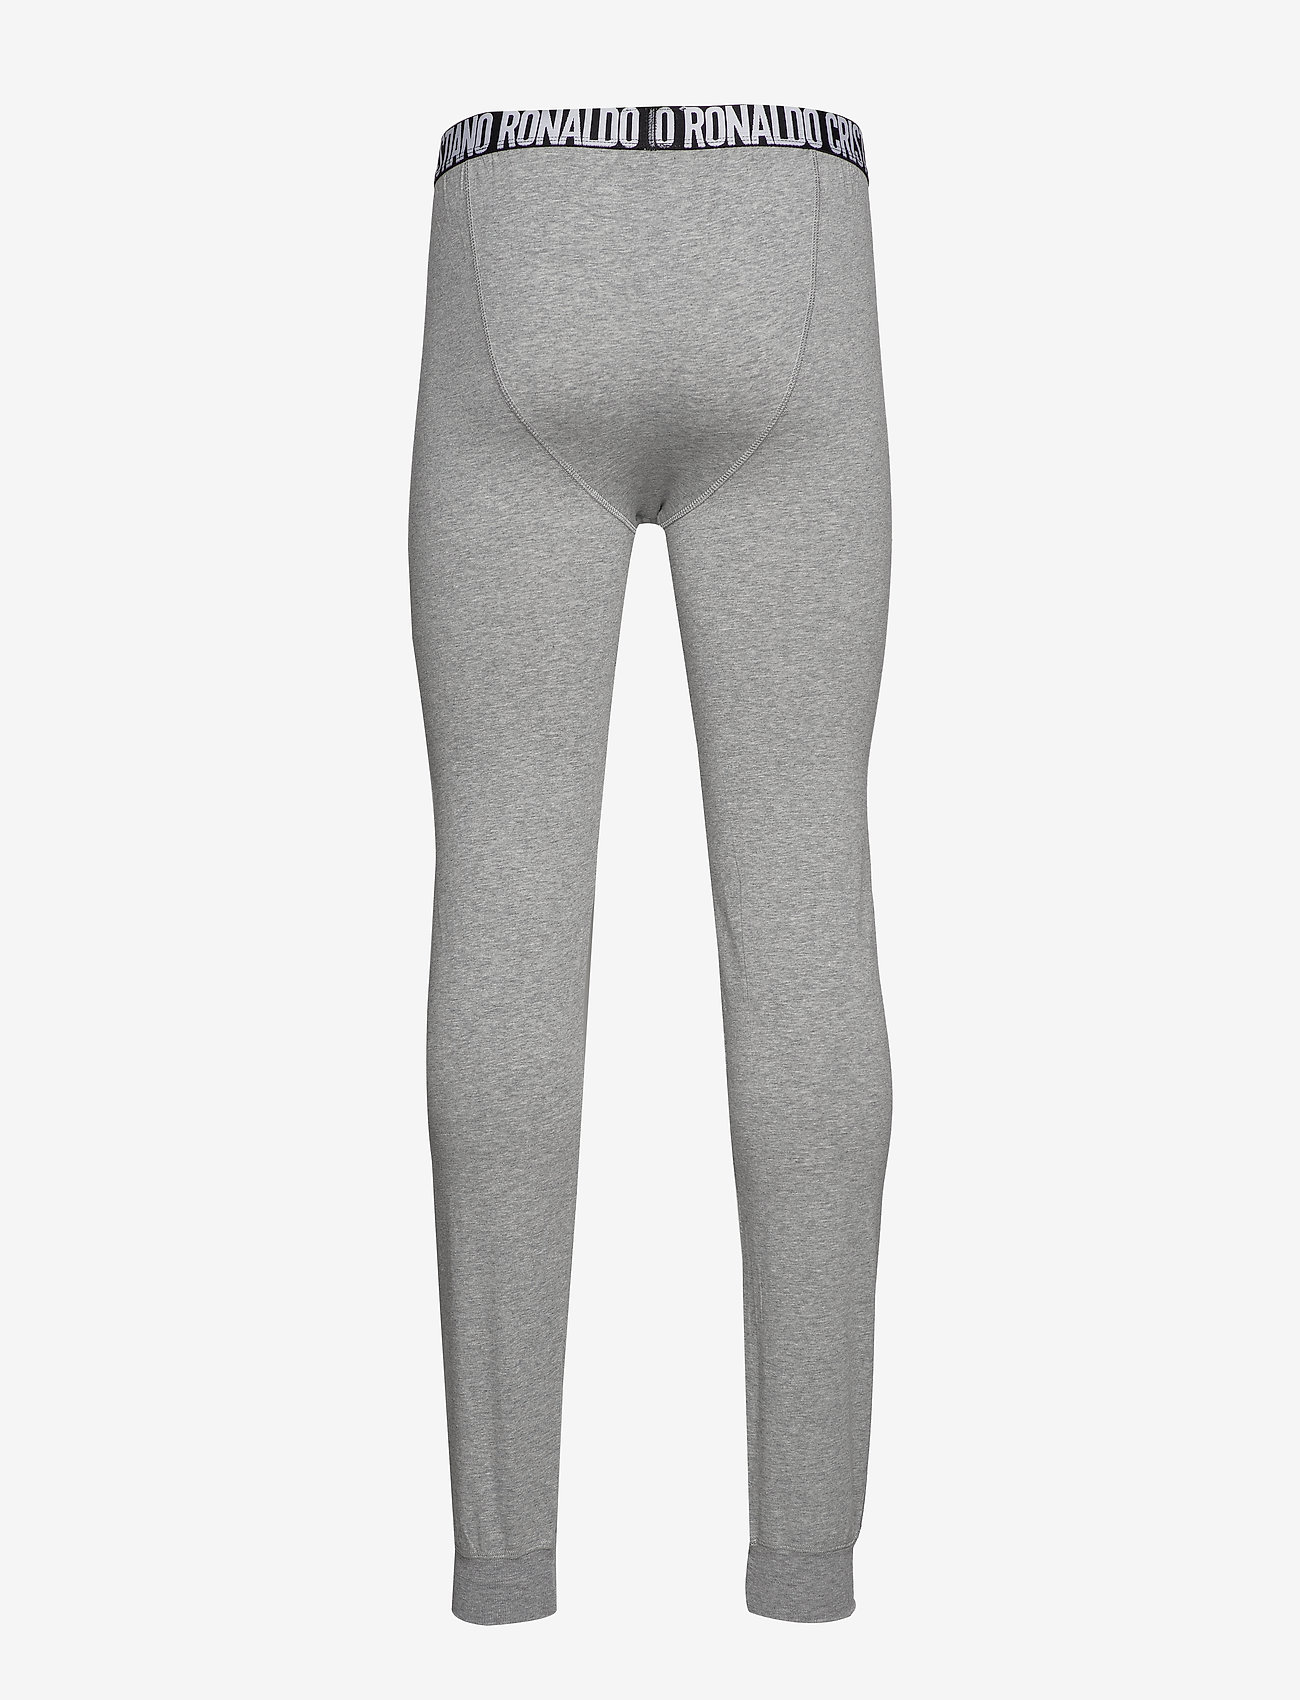 CR7 CR7 Fashion, Long Johns - Nattøy GREY - Menn Klær